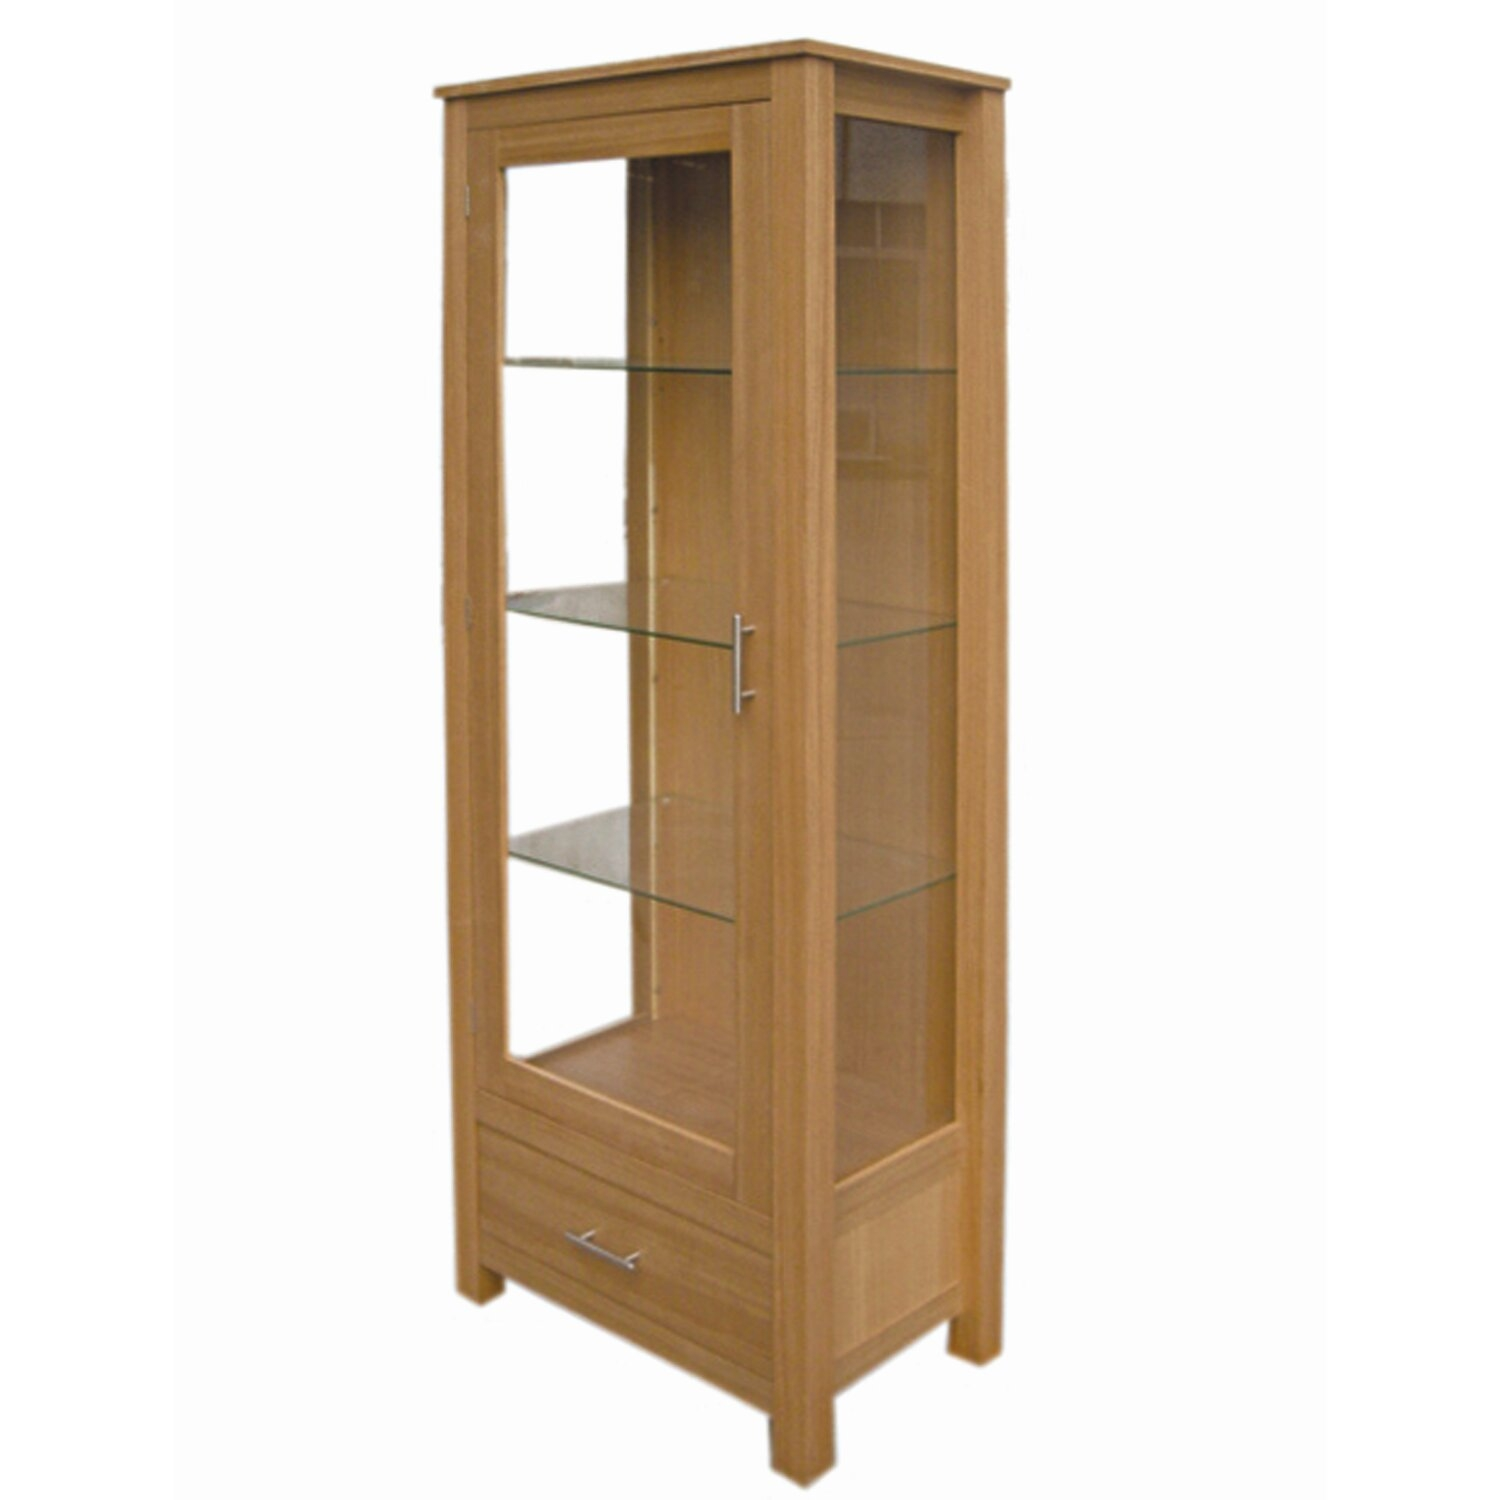 Gentil Small Display Cabinets 3